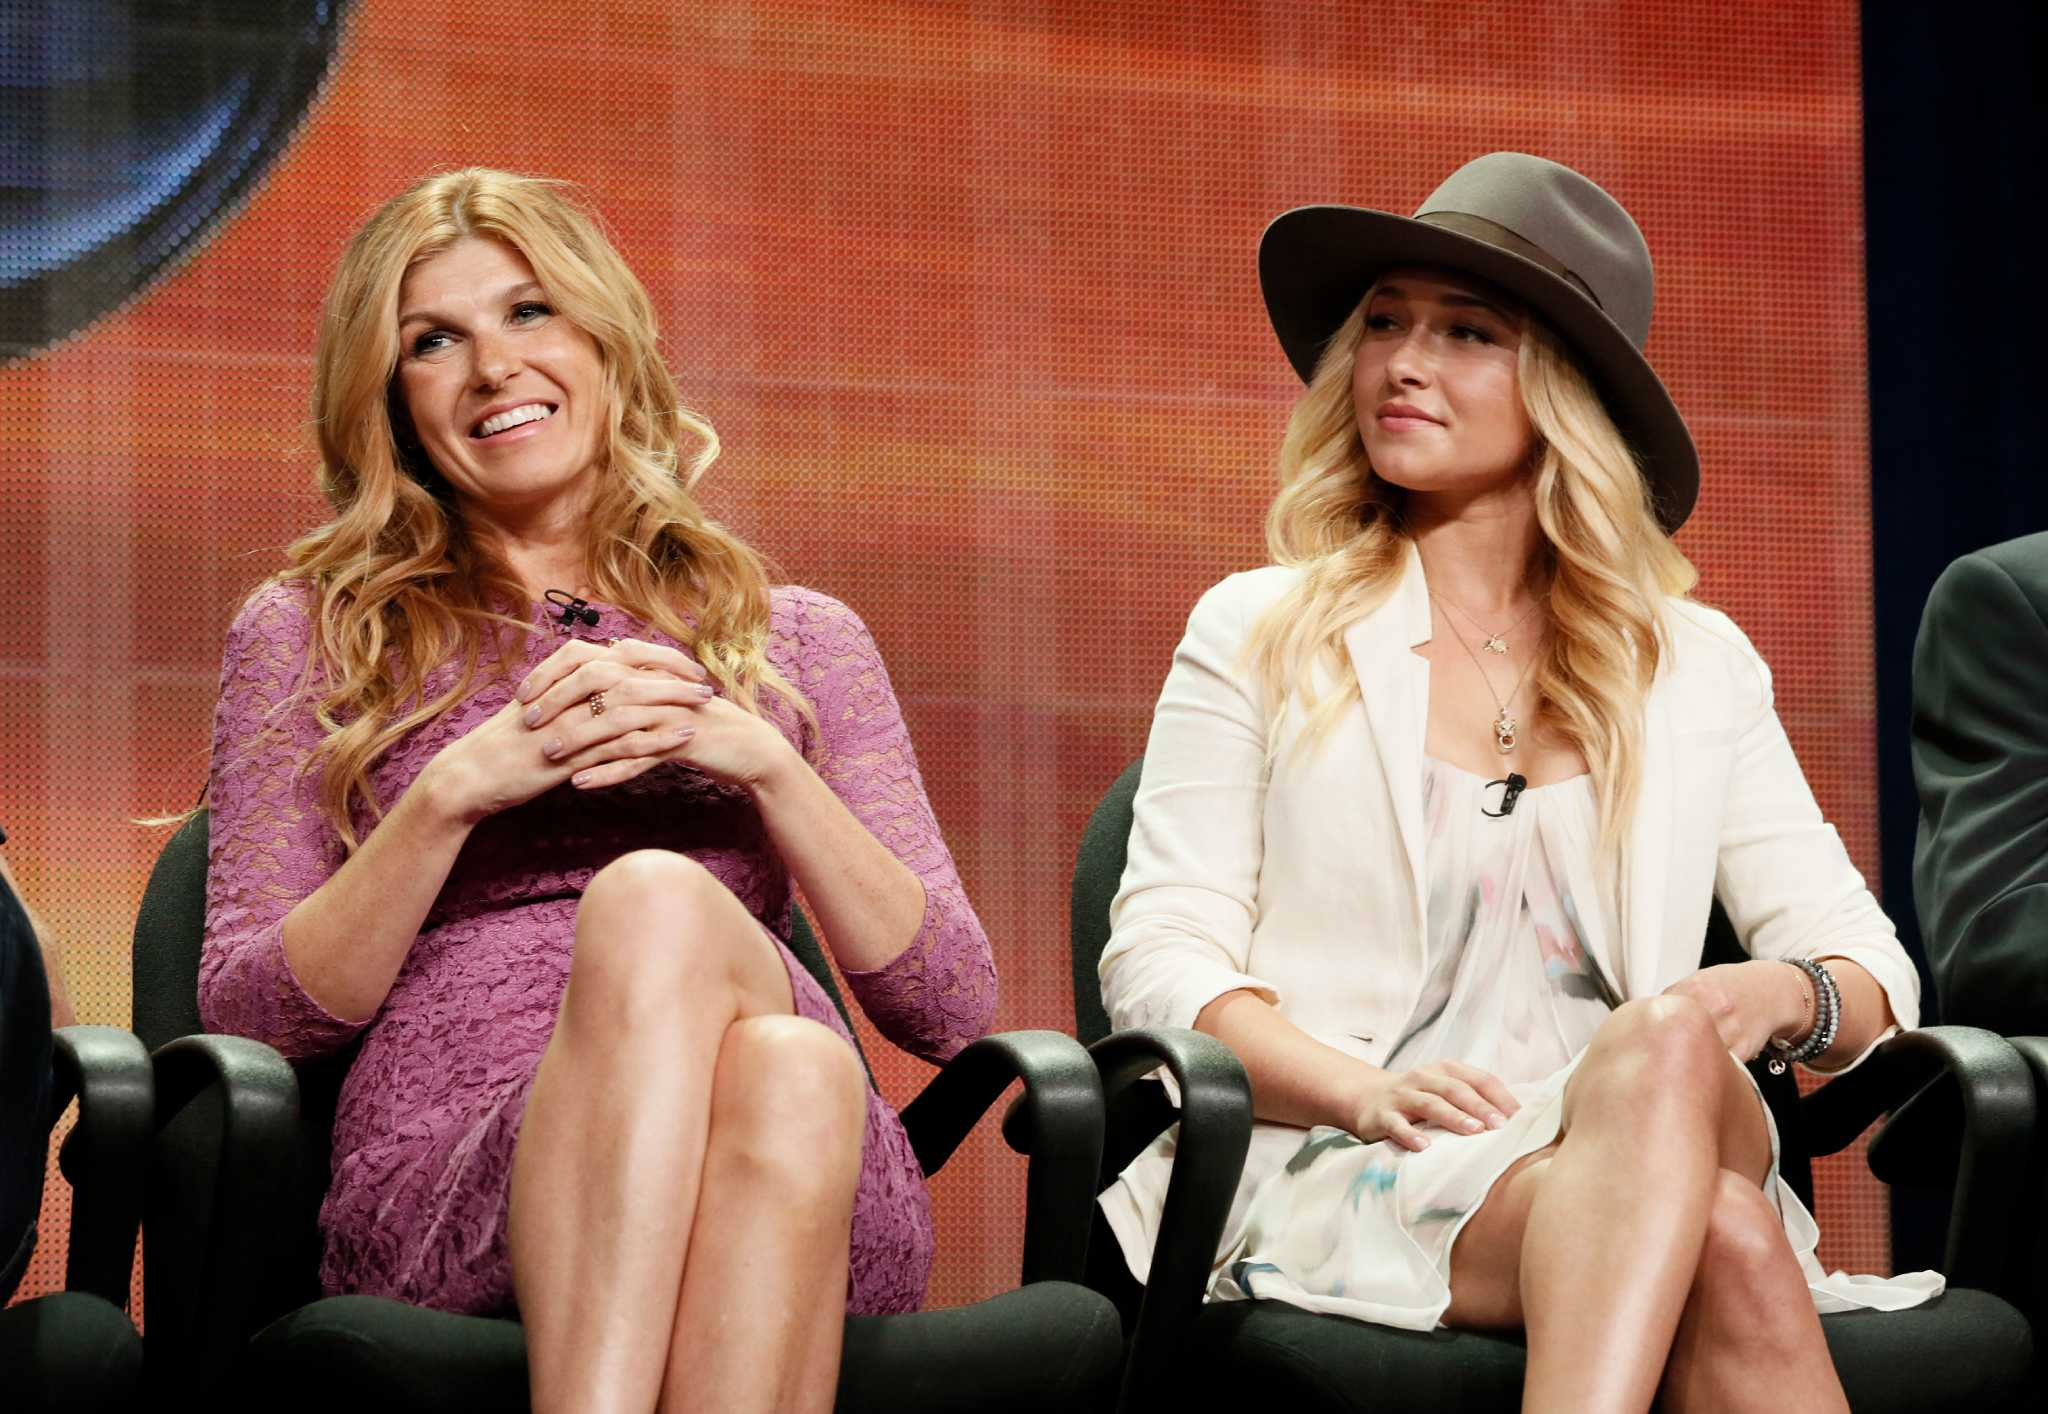 """FILE - In this July 27, 2012 file photo, cast members Connie Britton and Hayden Panettiere attend the """"Nashville"""" panel at the Disney ABC TCA Day 2 at the Beverly Hilton Hotel, in Beverly Hills, Calif. Cancelled by ABC after four seasons, the new season of """"Nashville"""" on CMT, which begins Jan. 5, 2017, aims to reflect more diversity in both the music and the cast.  (Photo by Todd Williamson/Invision/AP, File)"""